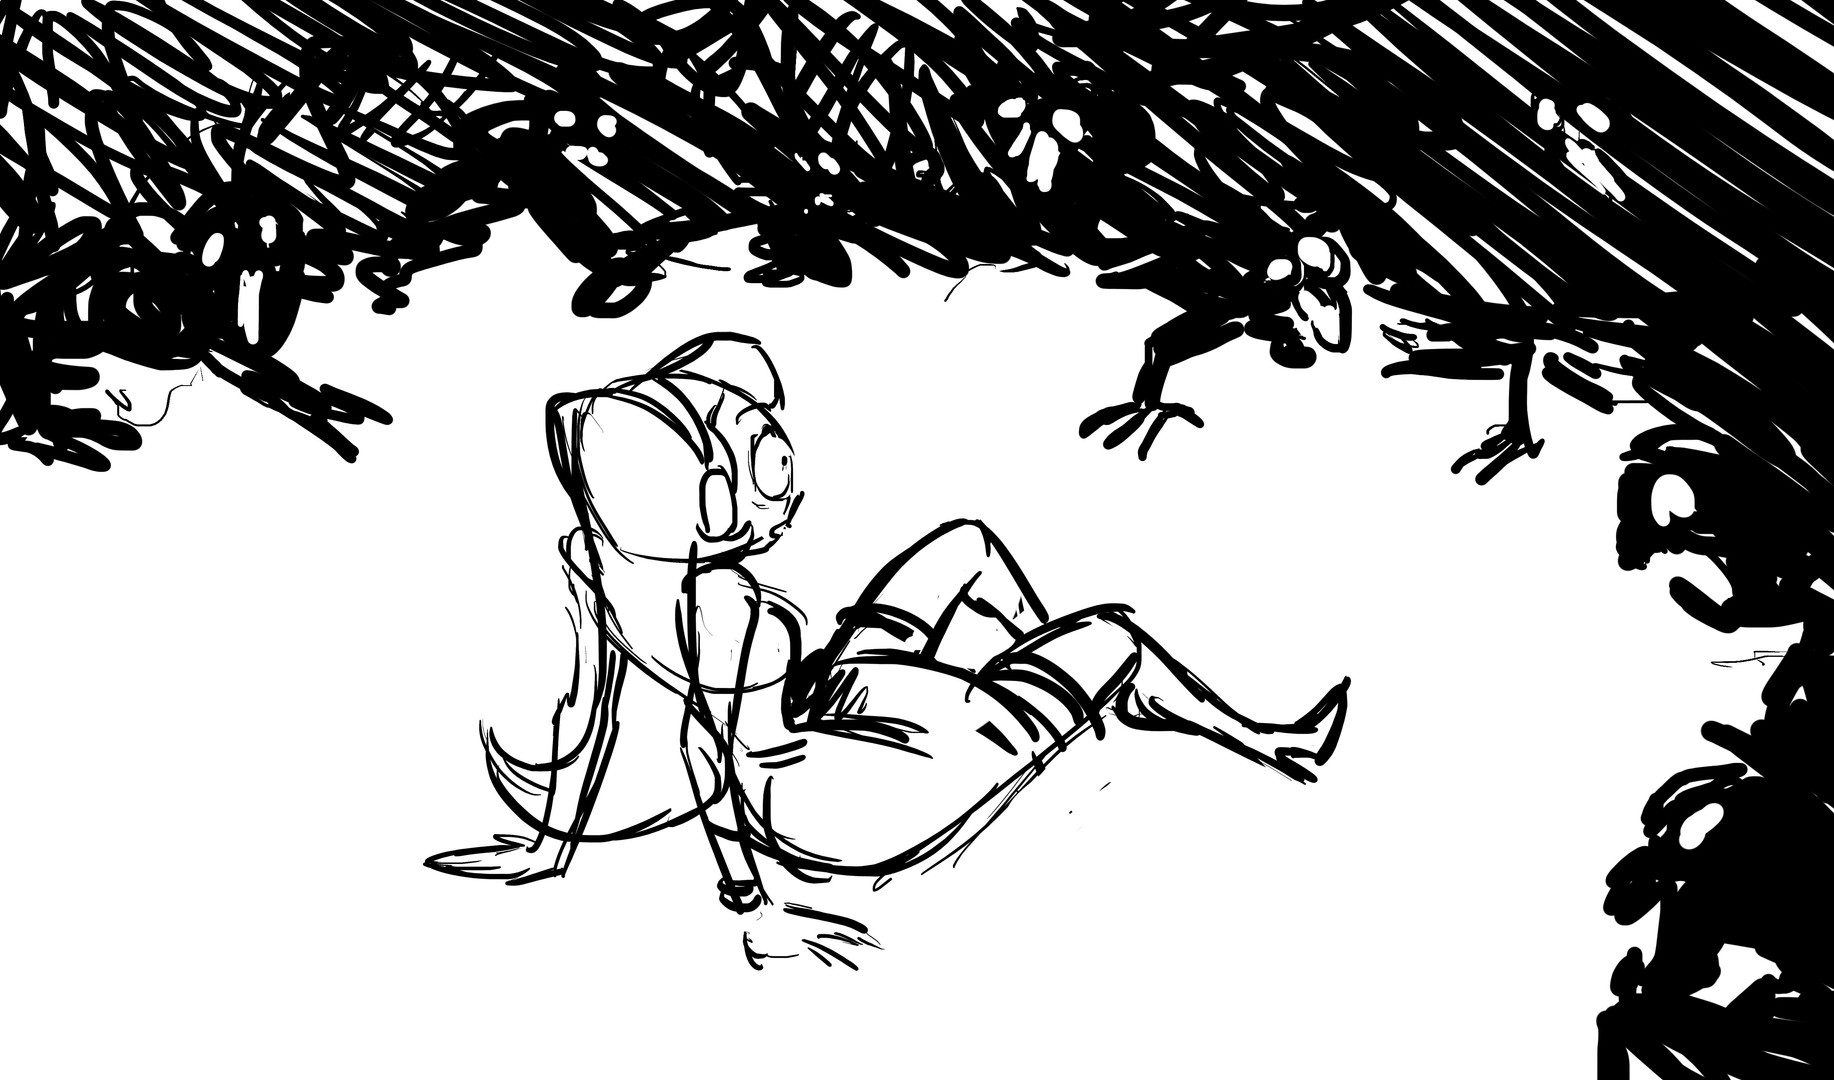 STORYBOARD - E - _0027_Layer Comp 28.jpg